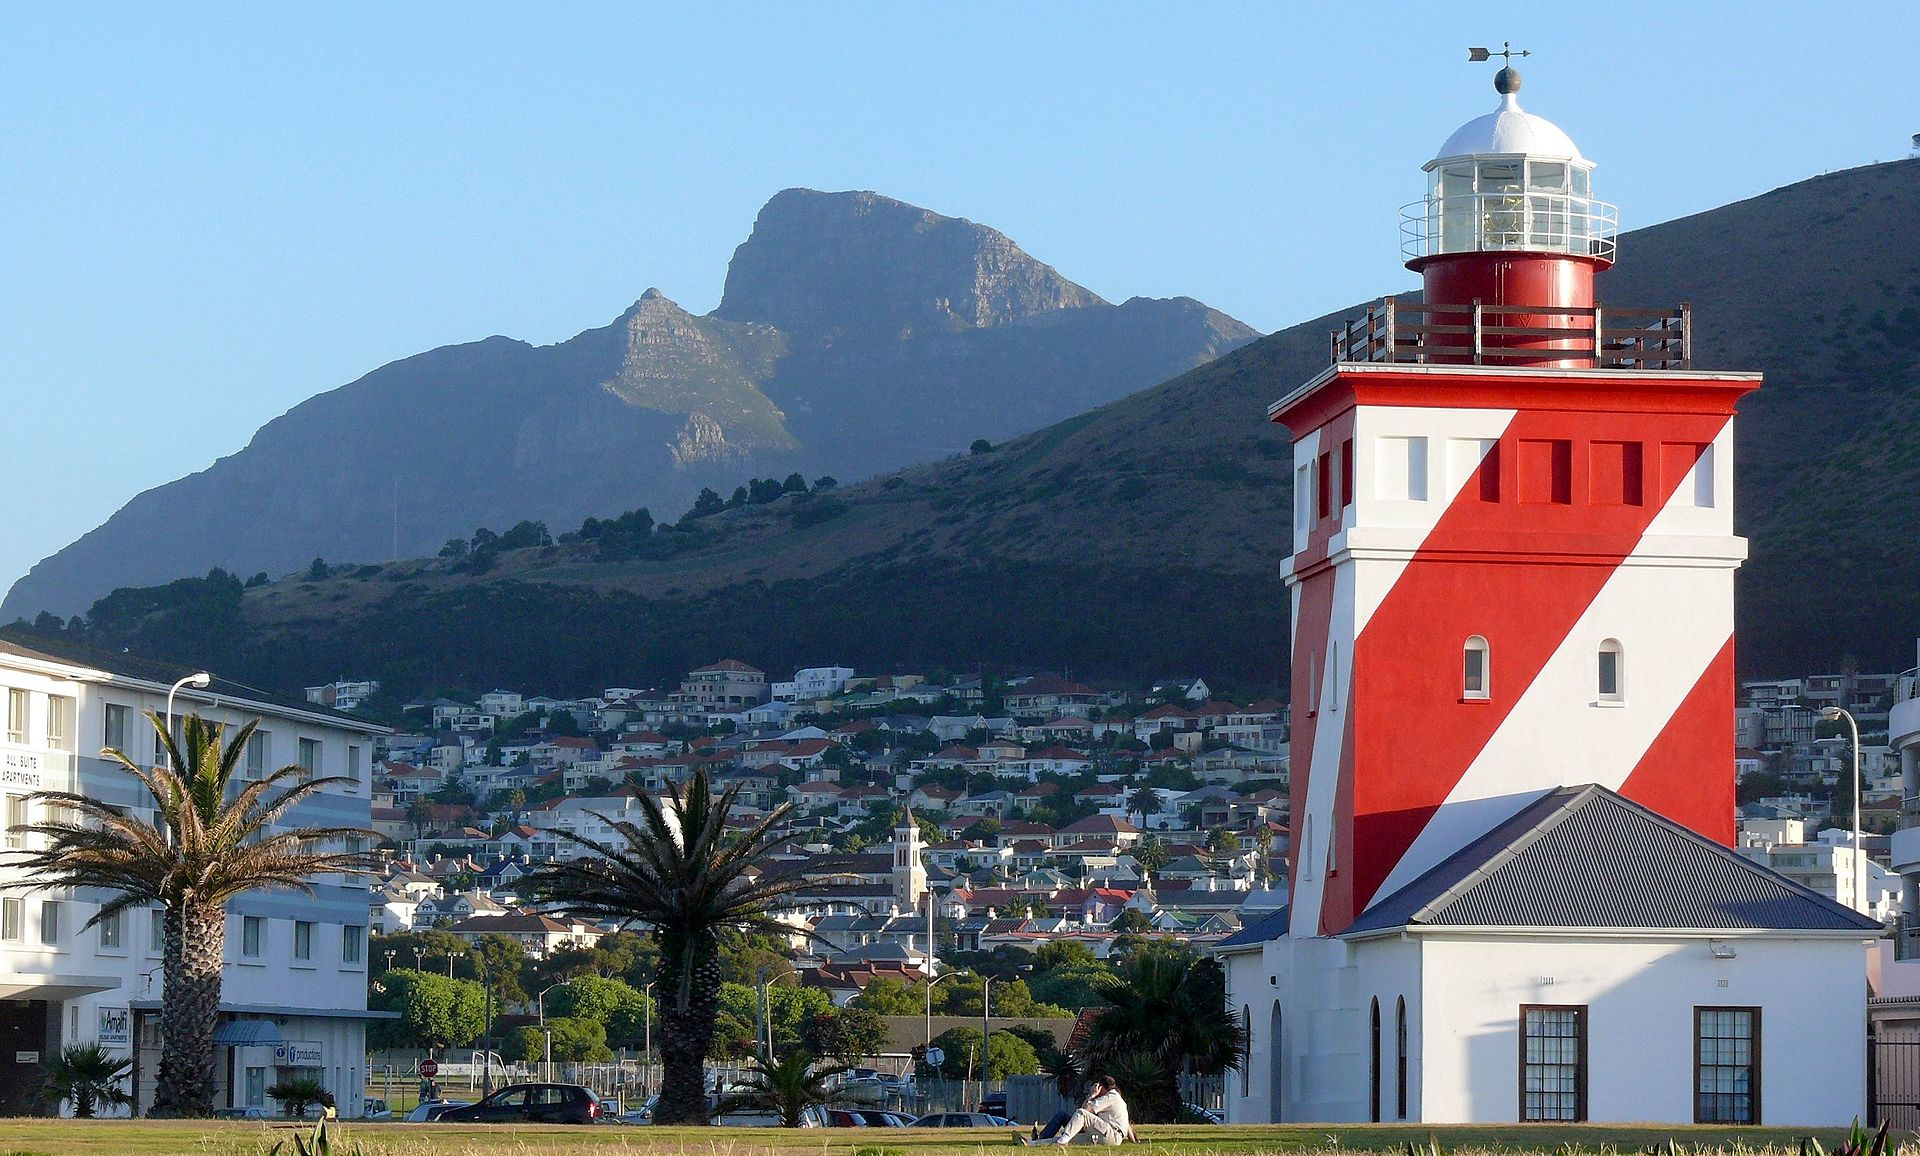 The Green Point Lighthouse at Mouille Point with Devil's Peak as a backdrop.